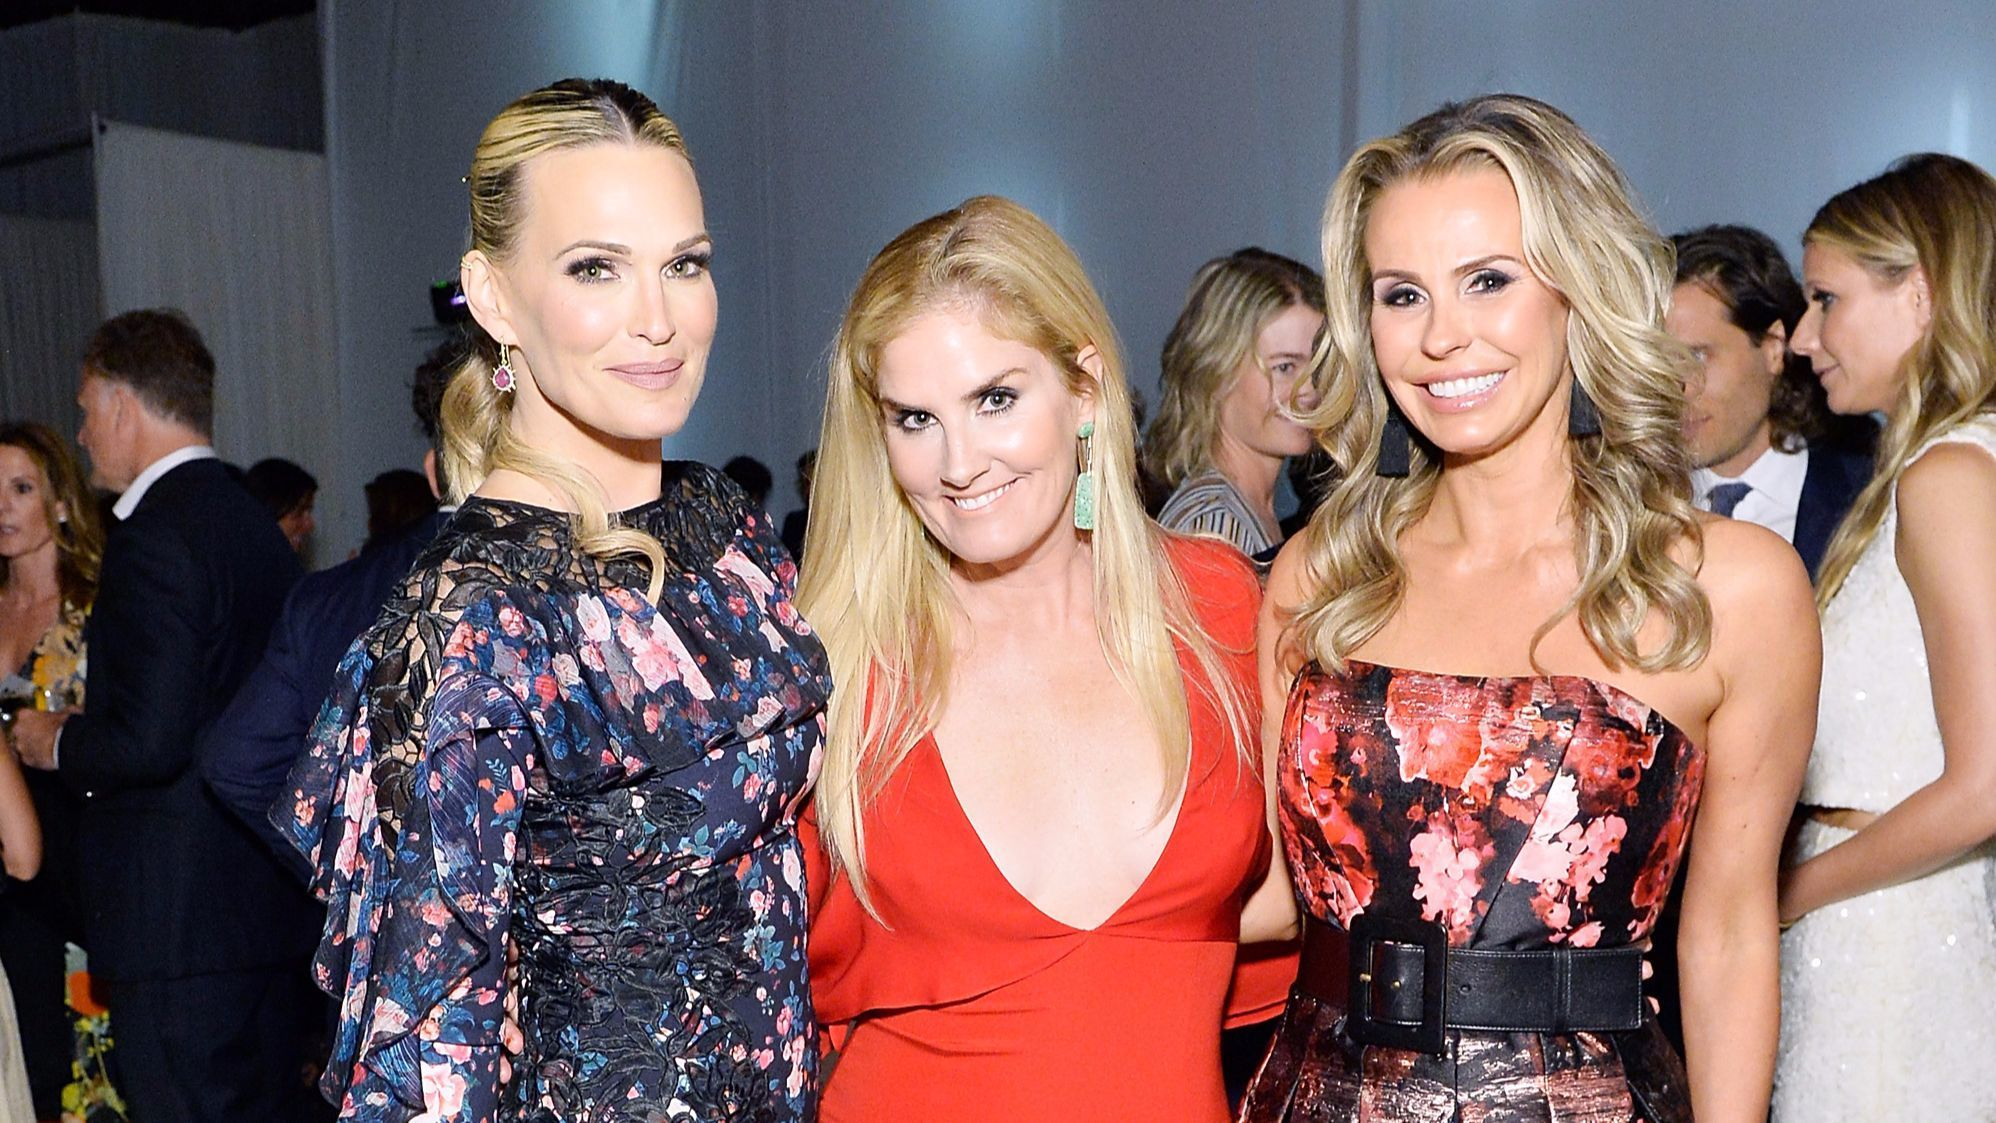 From left, Molly Sims, Mary Alice Haney and co-chair Natasha Croxall.